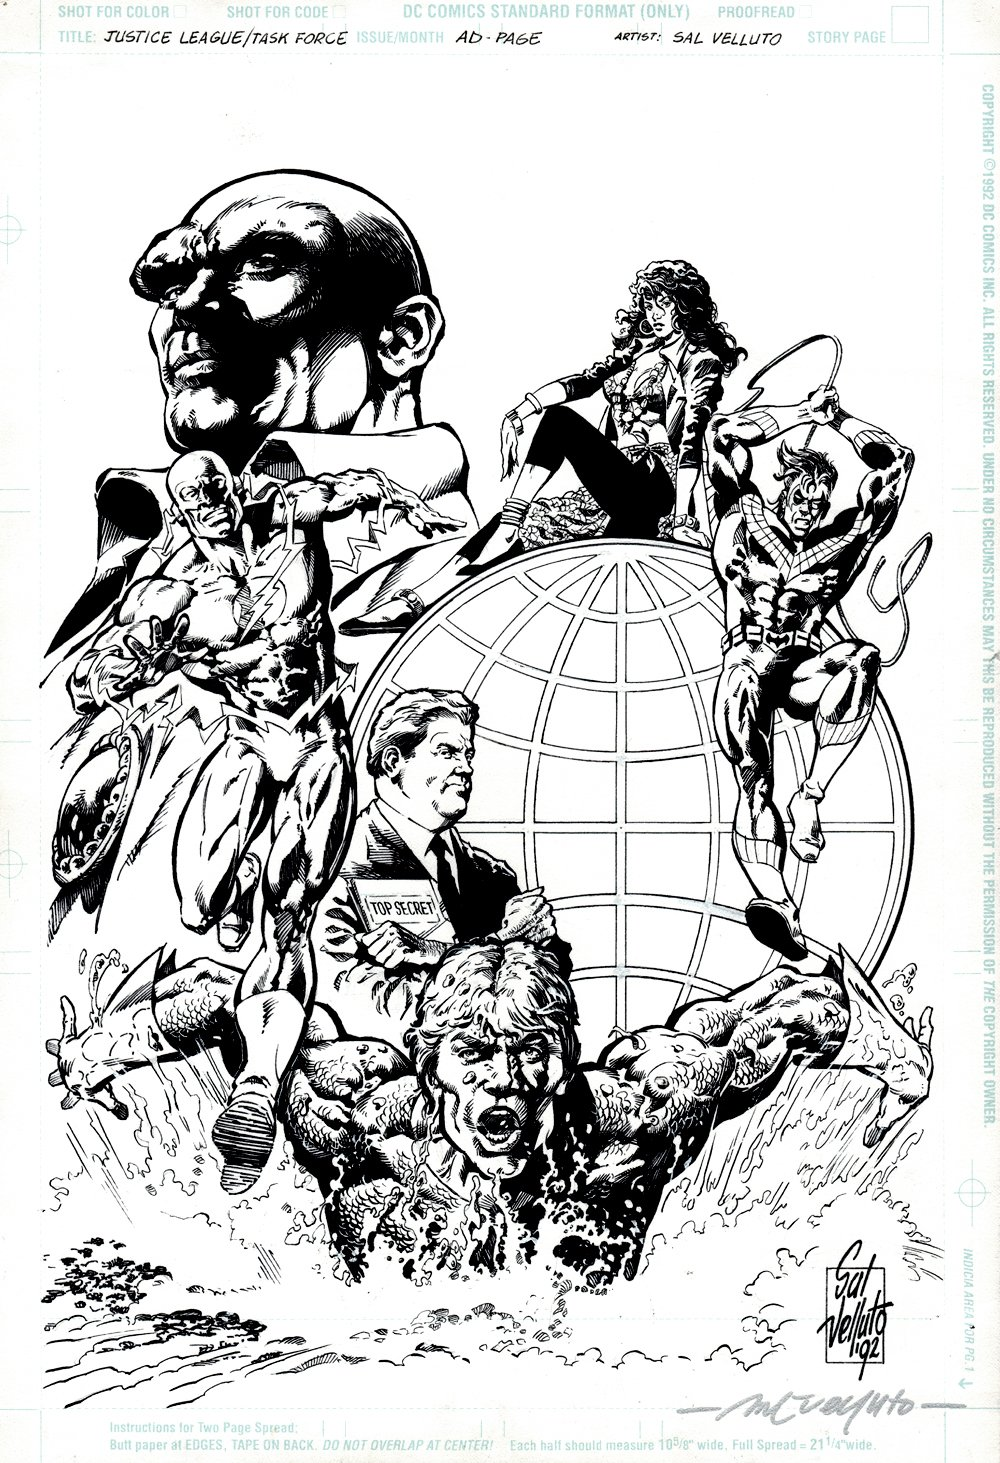 Justice League Task Force Published Pinup PRE ISSUE #1 (ENTIRE TEAM) 1992